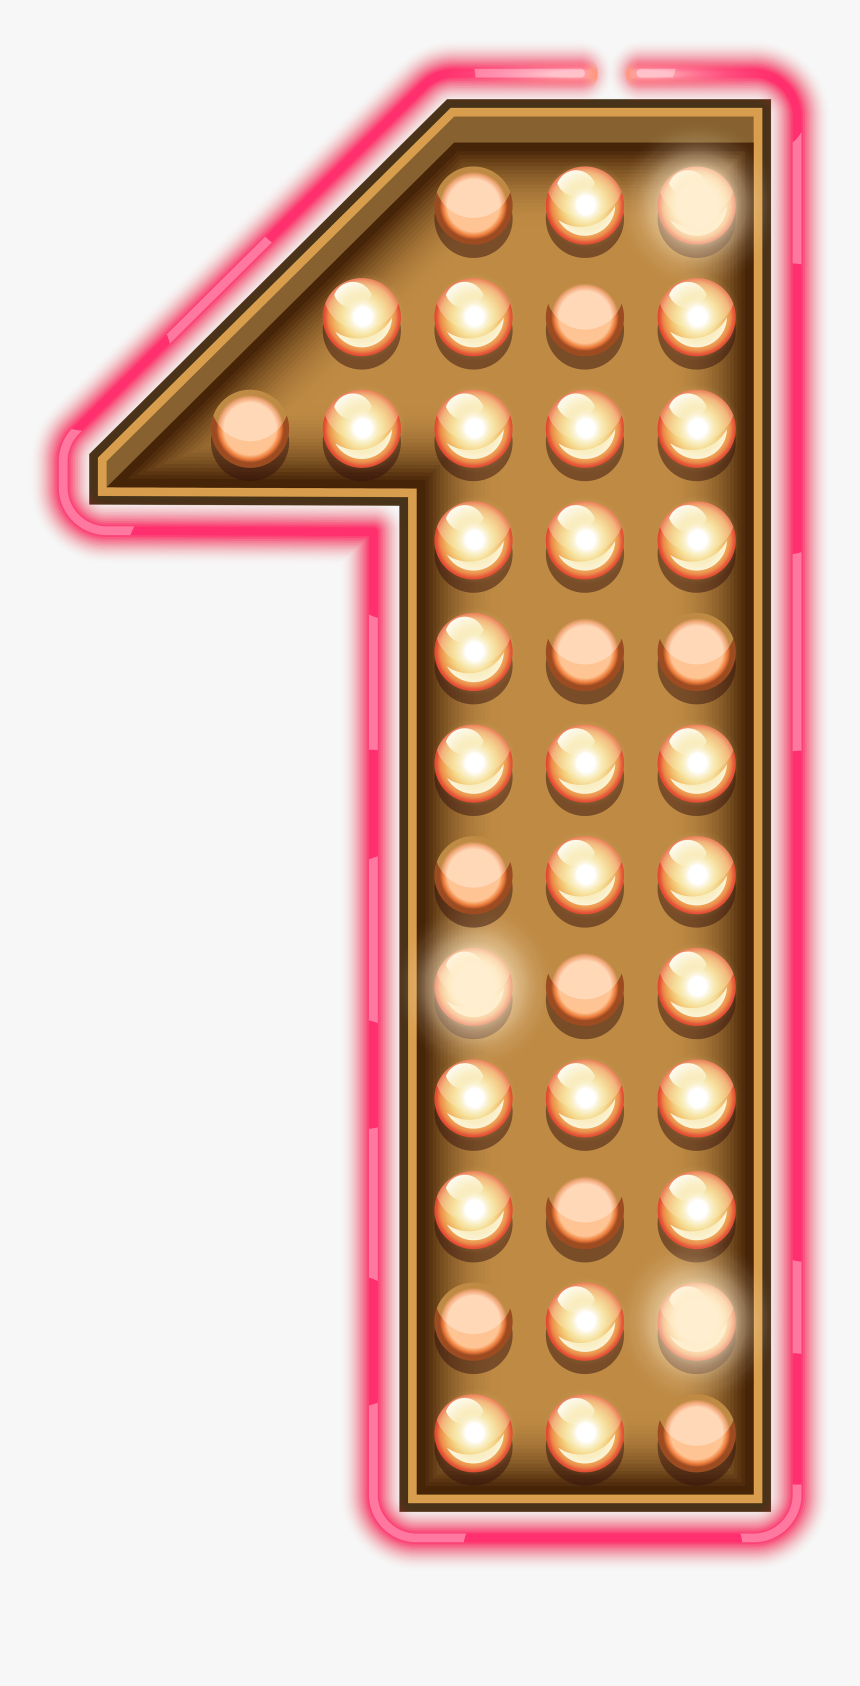 Number One Neon Lights Transparent Png Clip Art Image - Numbers Neon Lights Png, Png Download, Free Download